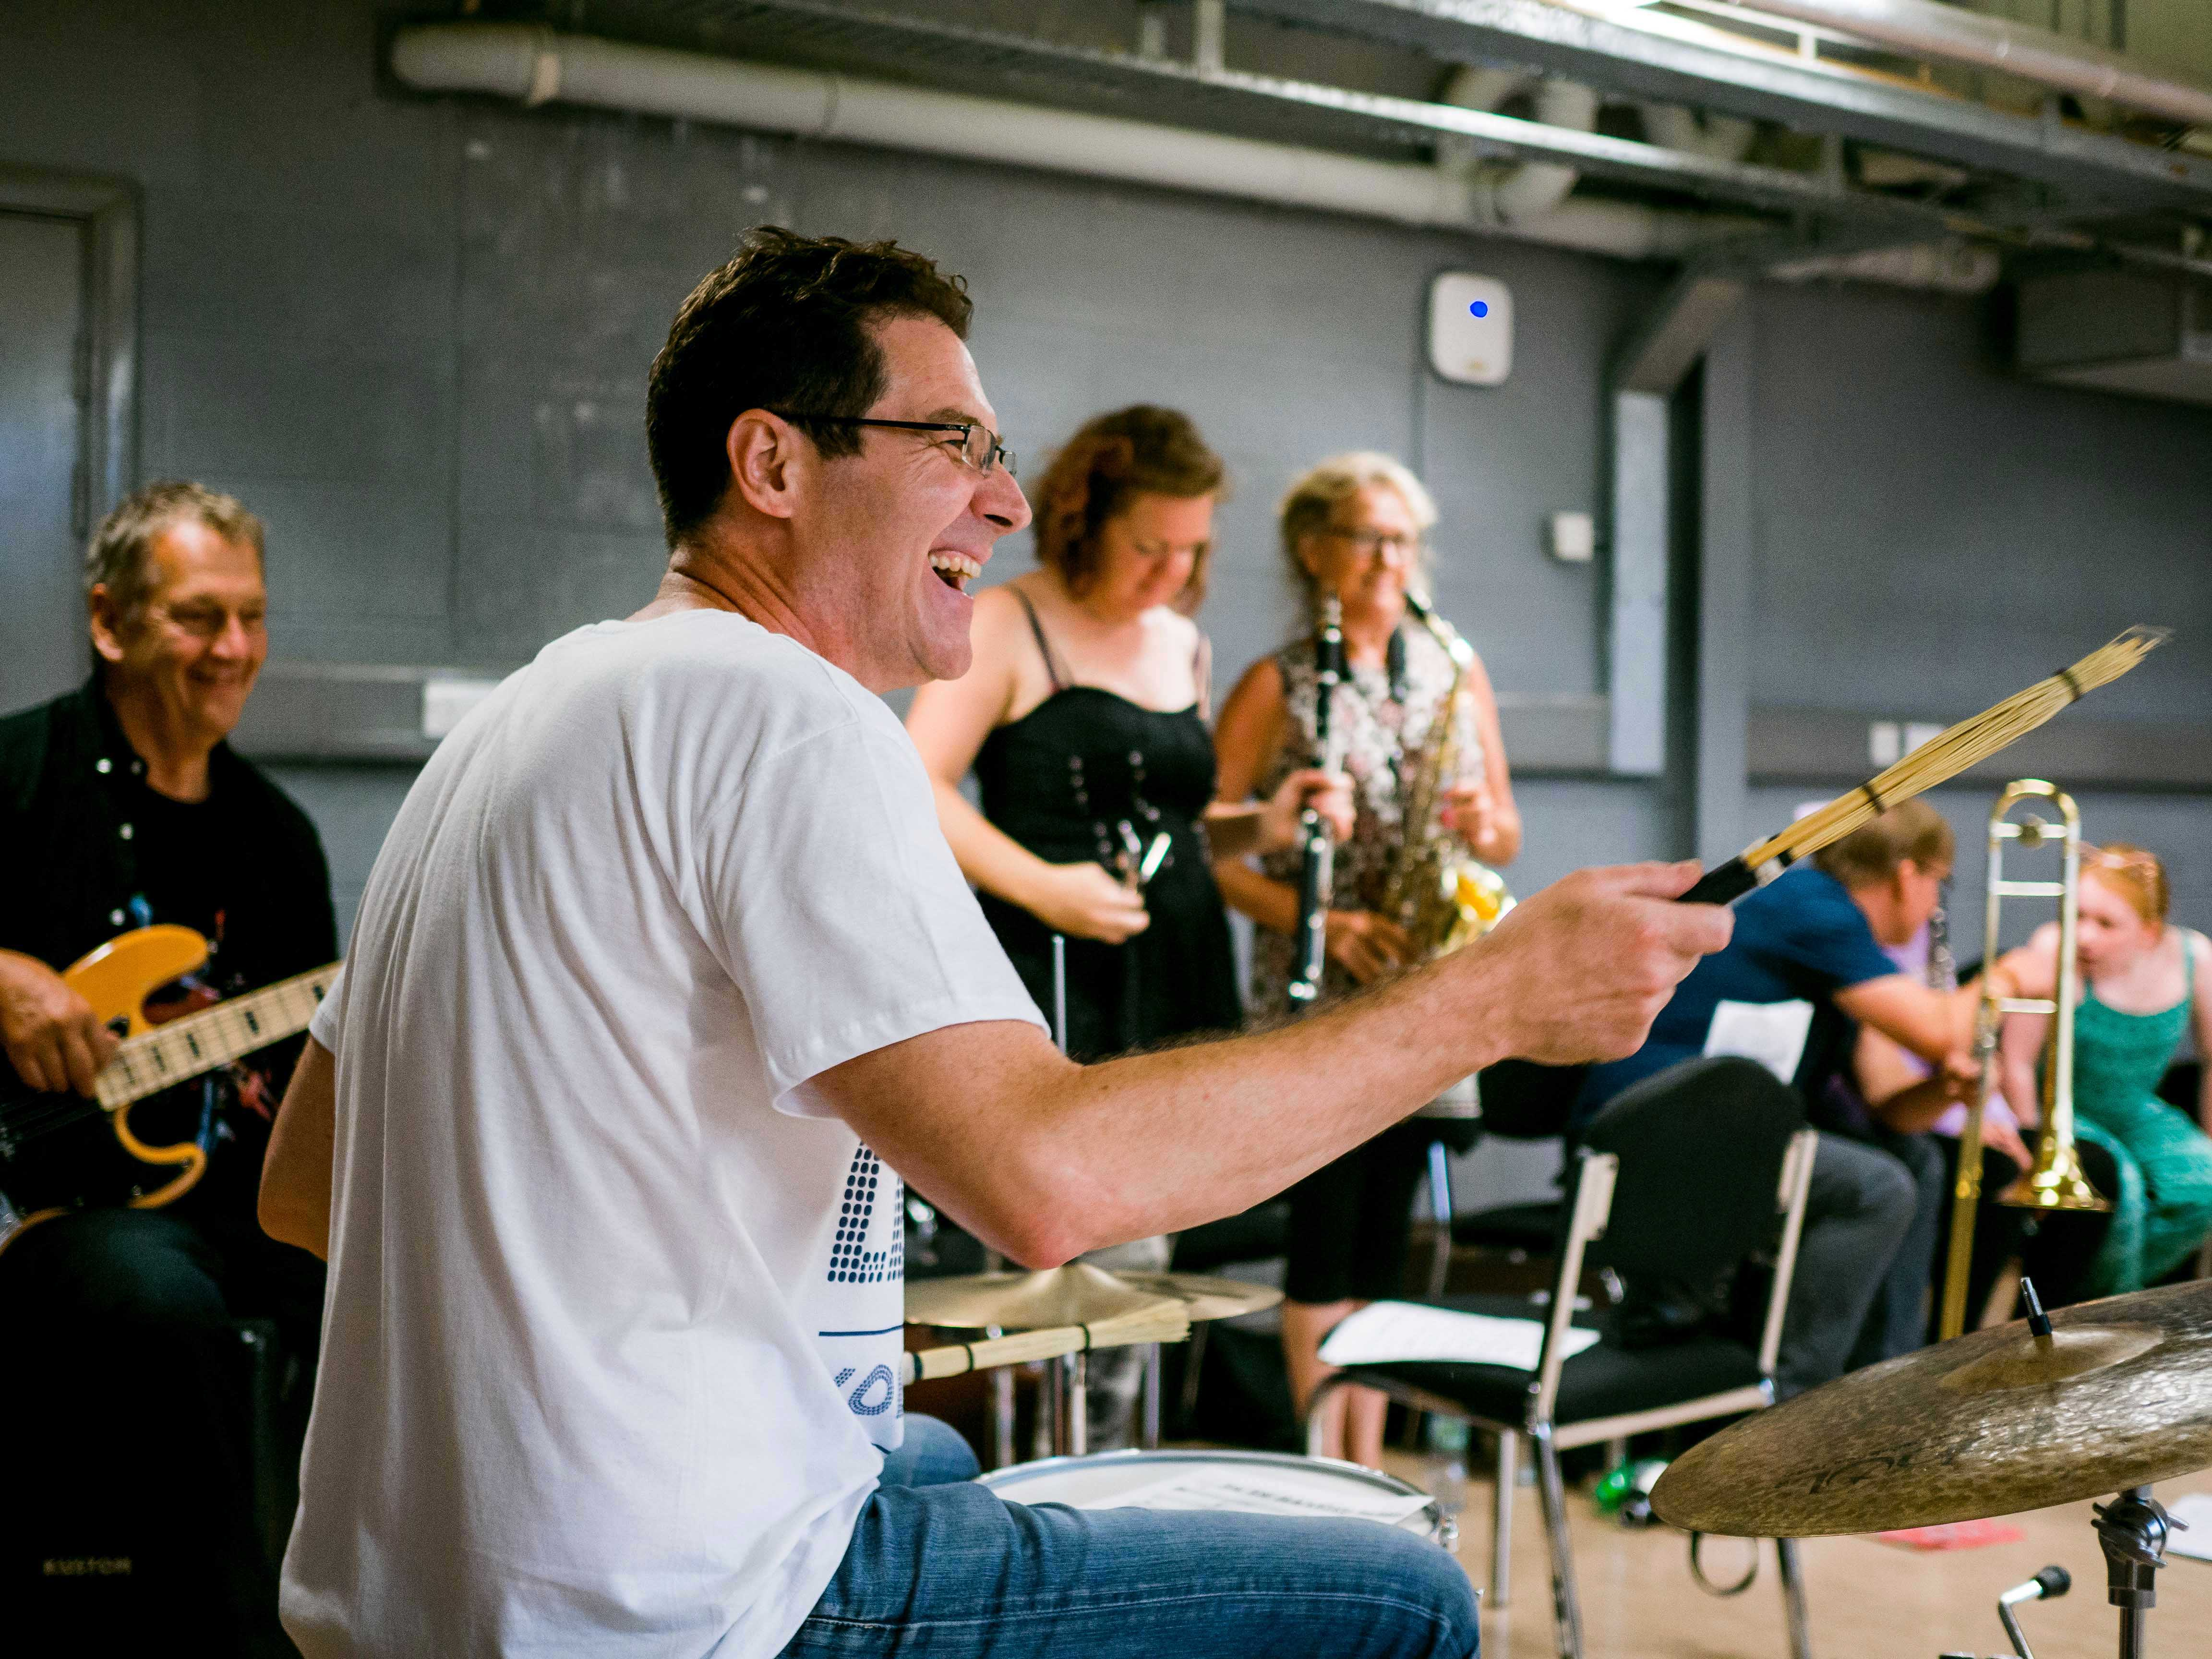 Leeds Jazz Festival event: Learning to Play Jazz